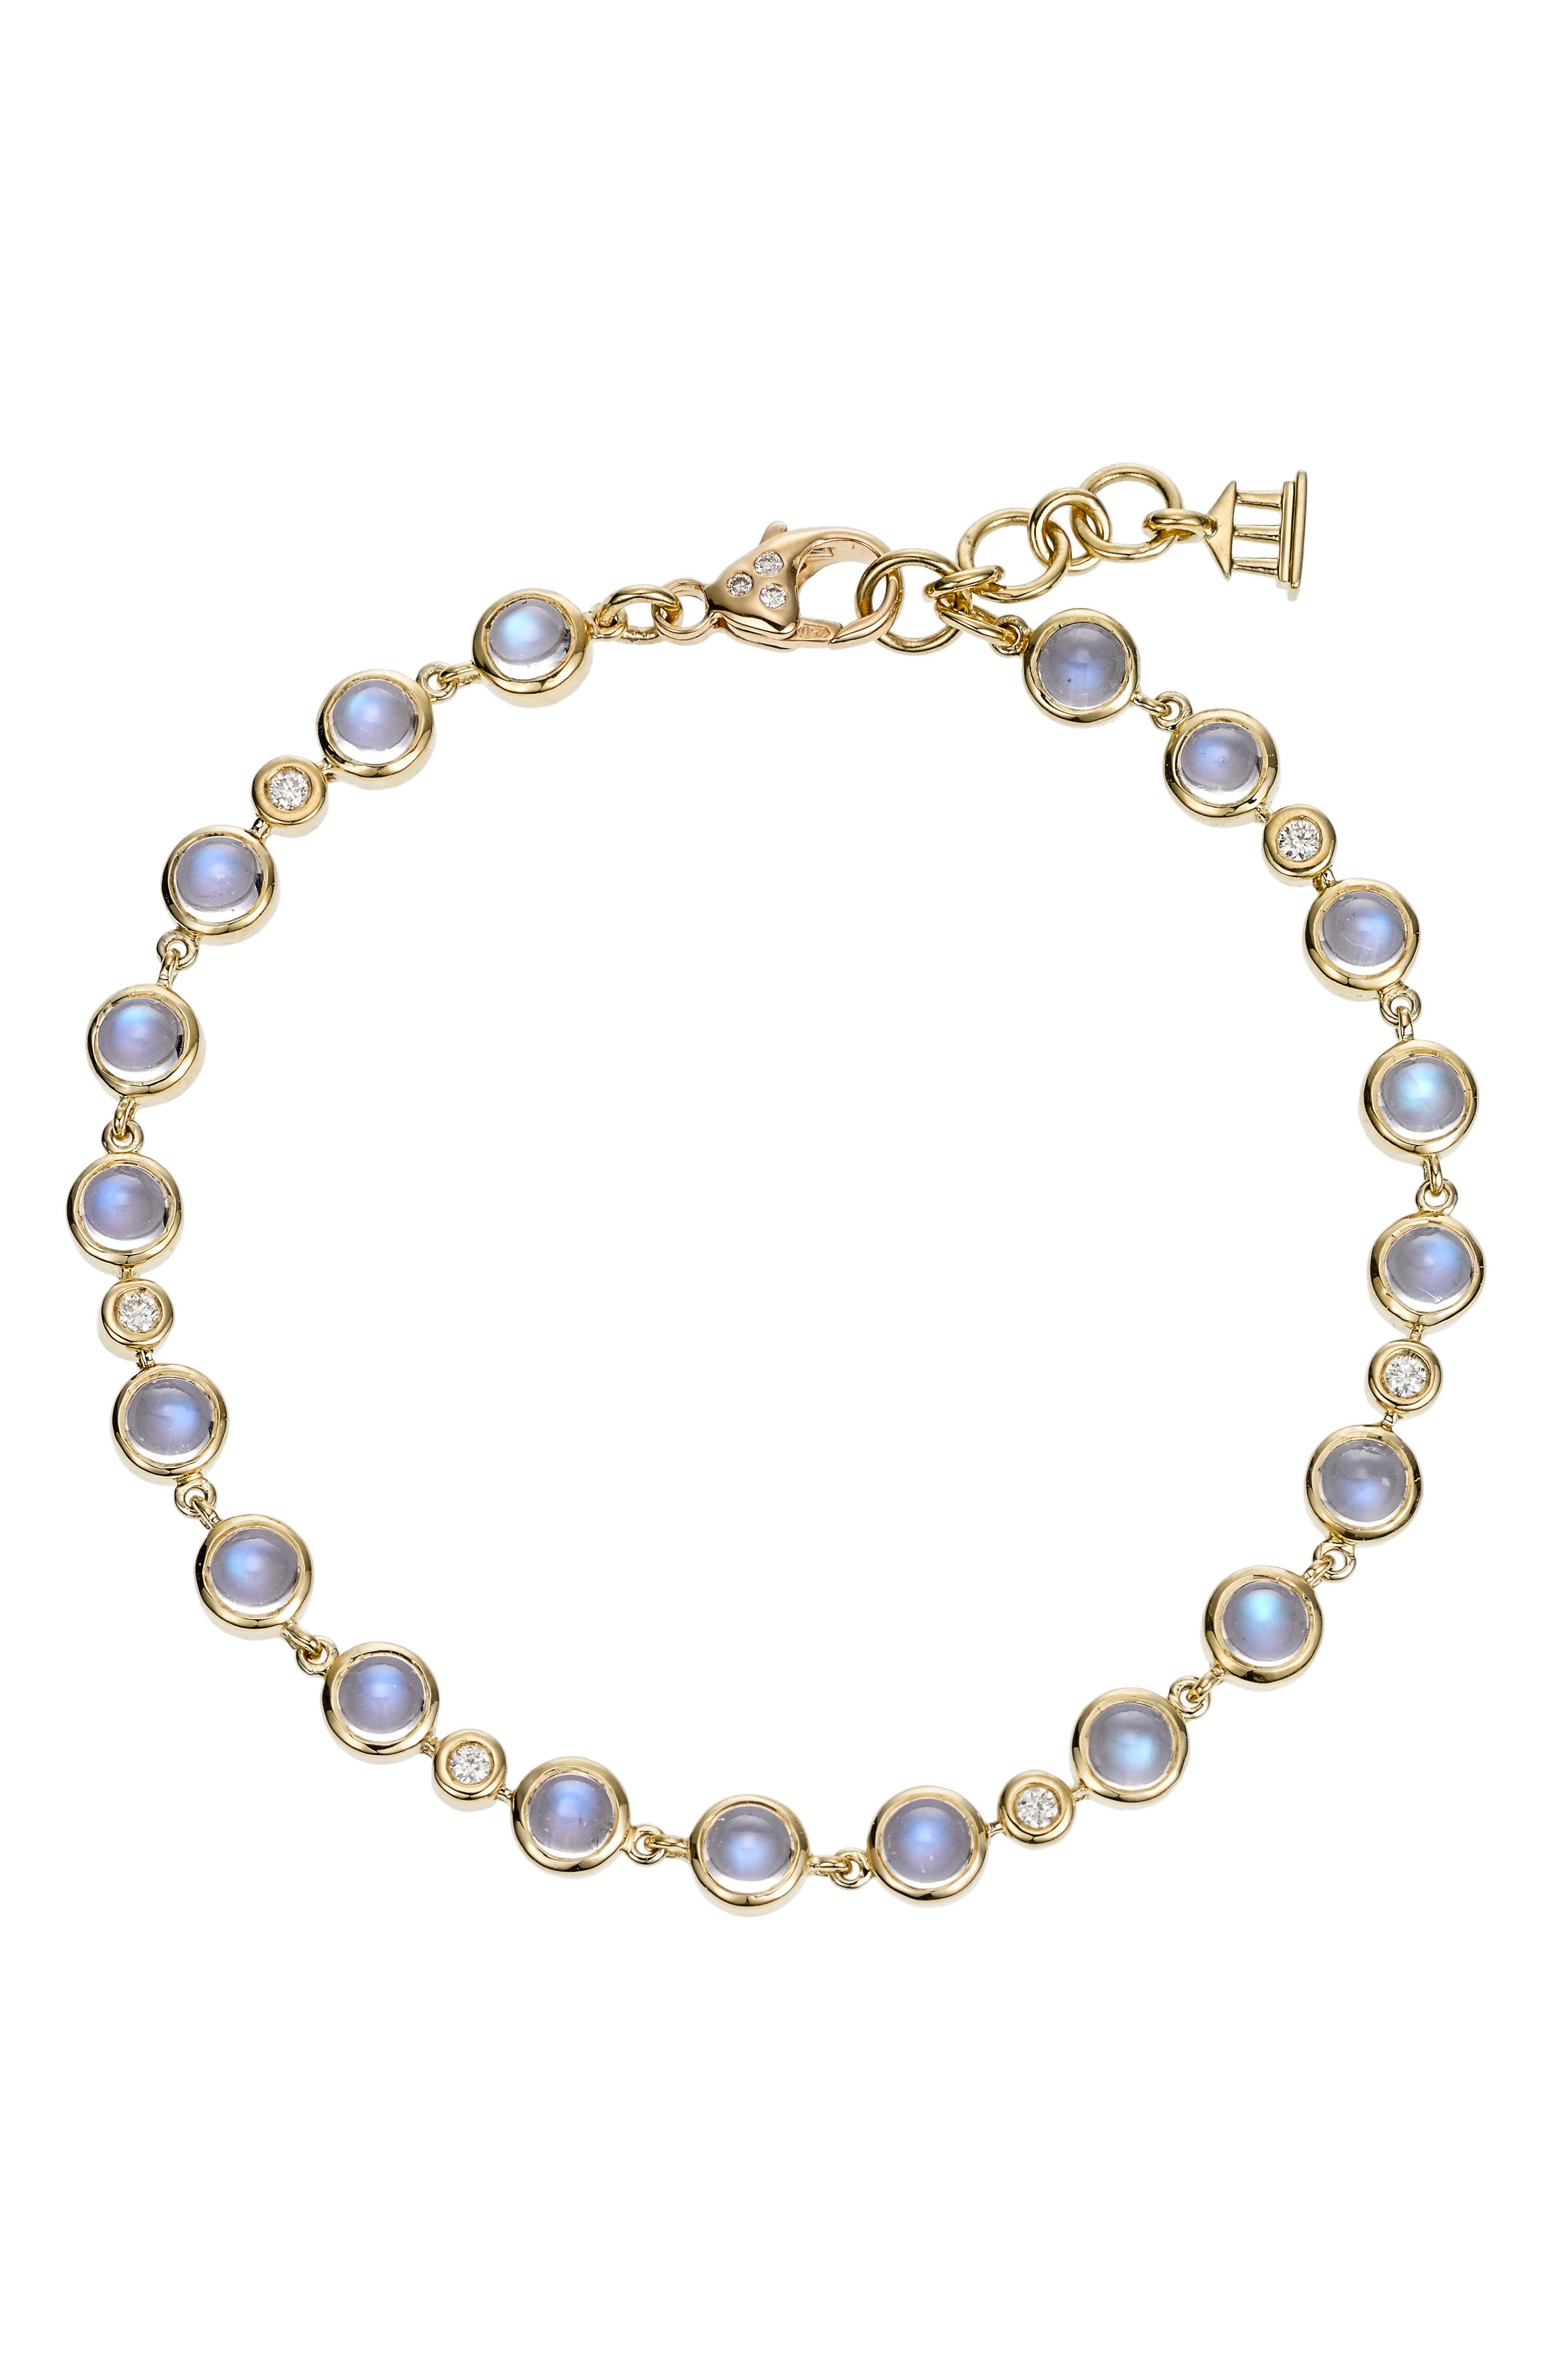 Temple St. Clair Diamond & Moonstone Bracelet,                         Main,                         color, D0.213 Gvs1 Bm 18Kyg